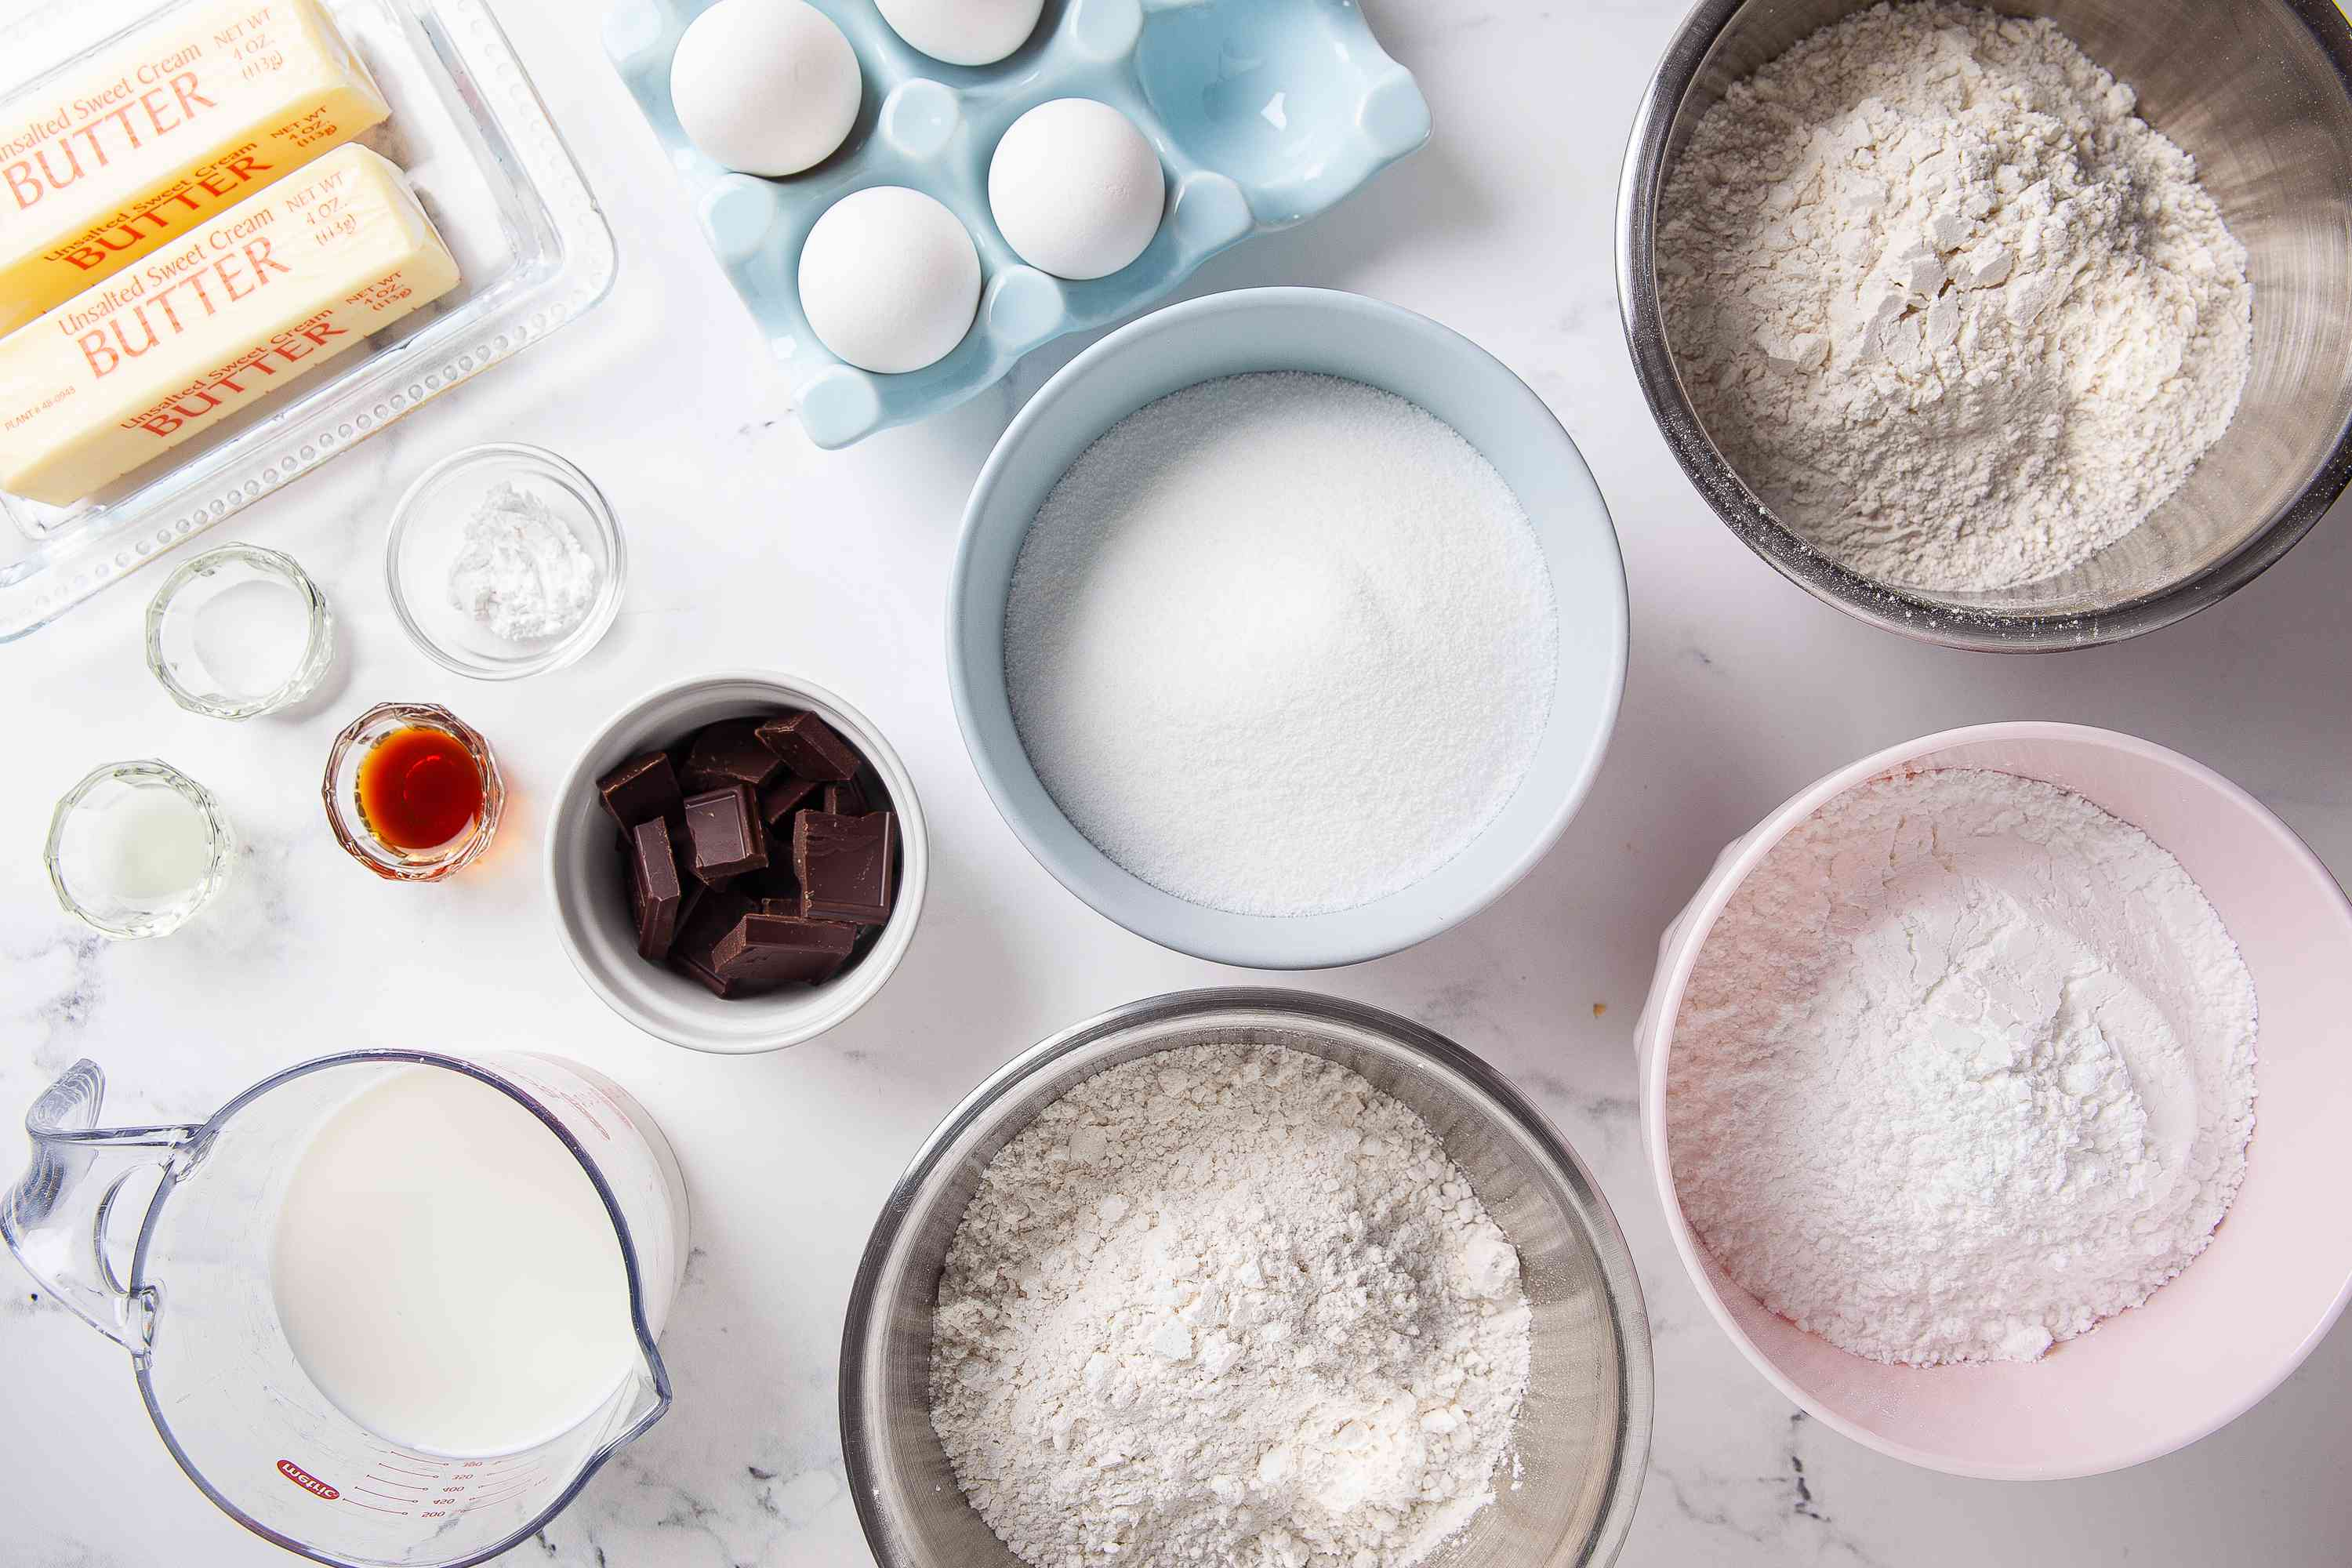 Ingredients for Black and White Cookies